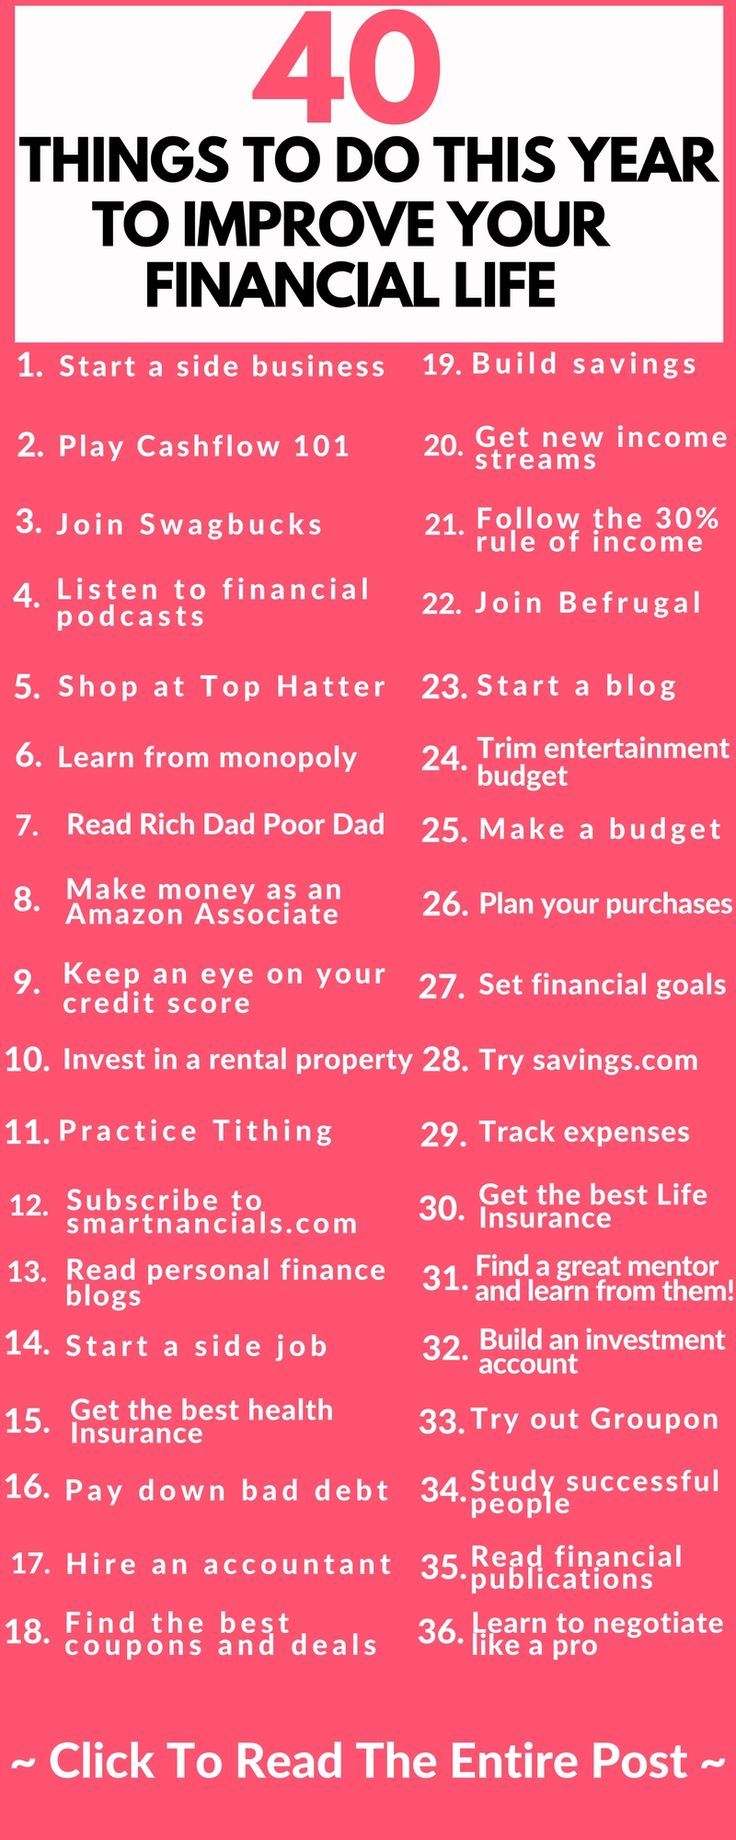 95a5dd05a86faa5bb1f25b989e1a932b best 25 online life insurance ideas on pinterest term life  at suagrazia.org